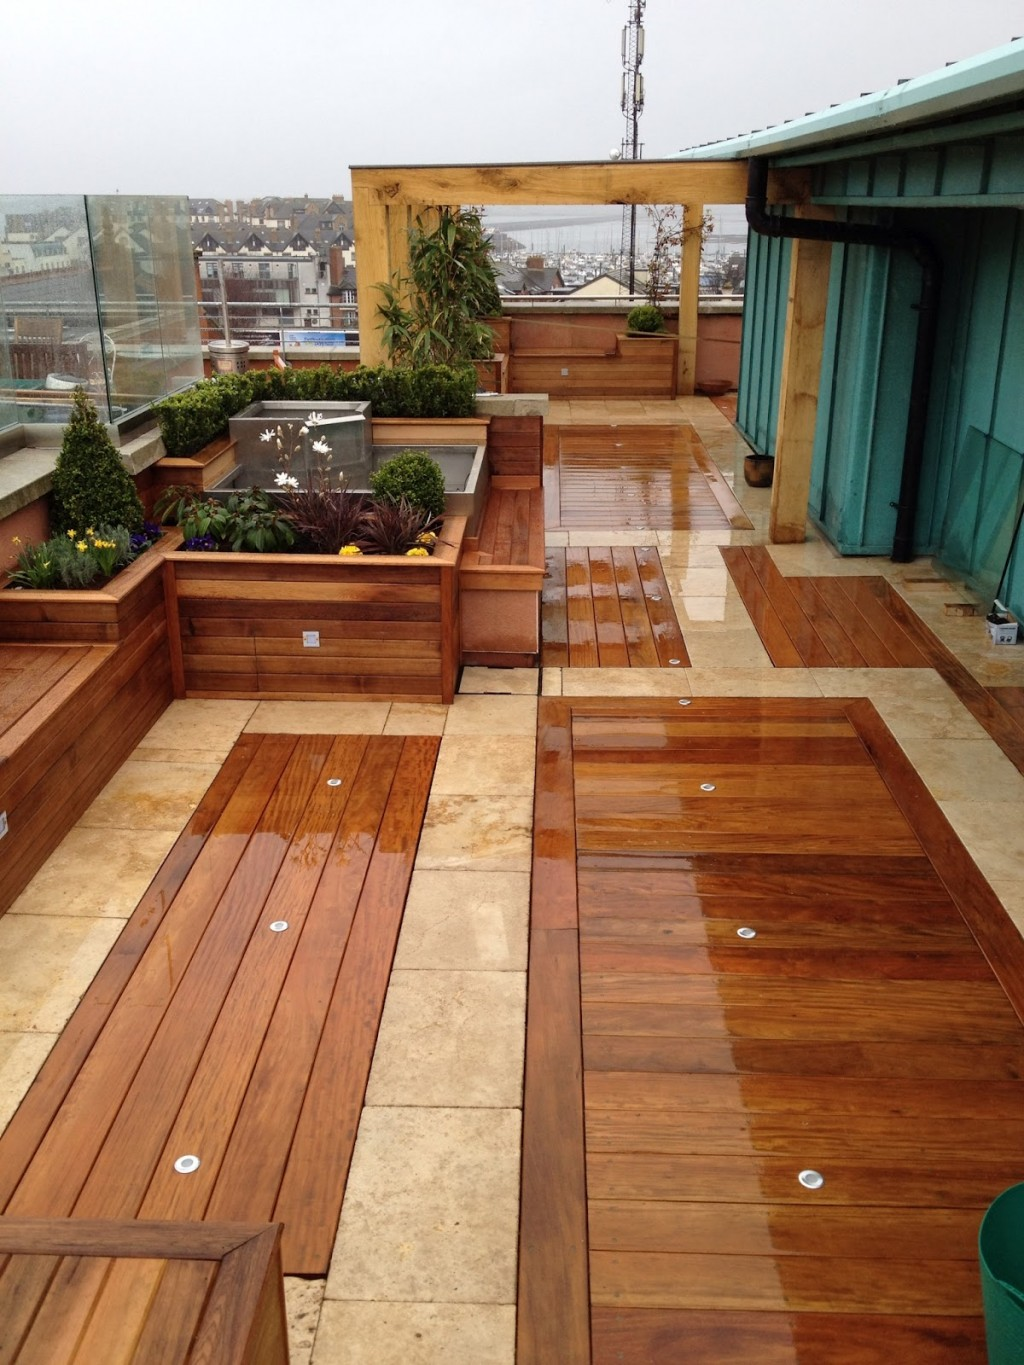 25 Beautiful Rooftop Garden Designs To Get Inspired. on Wooded Backyard Ideas id=73346